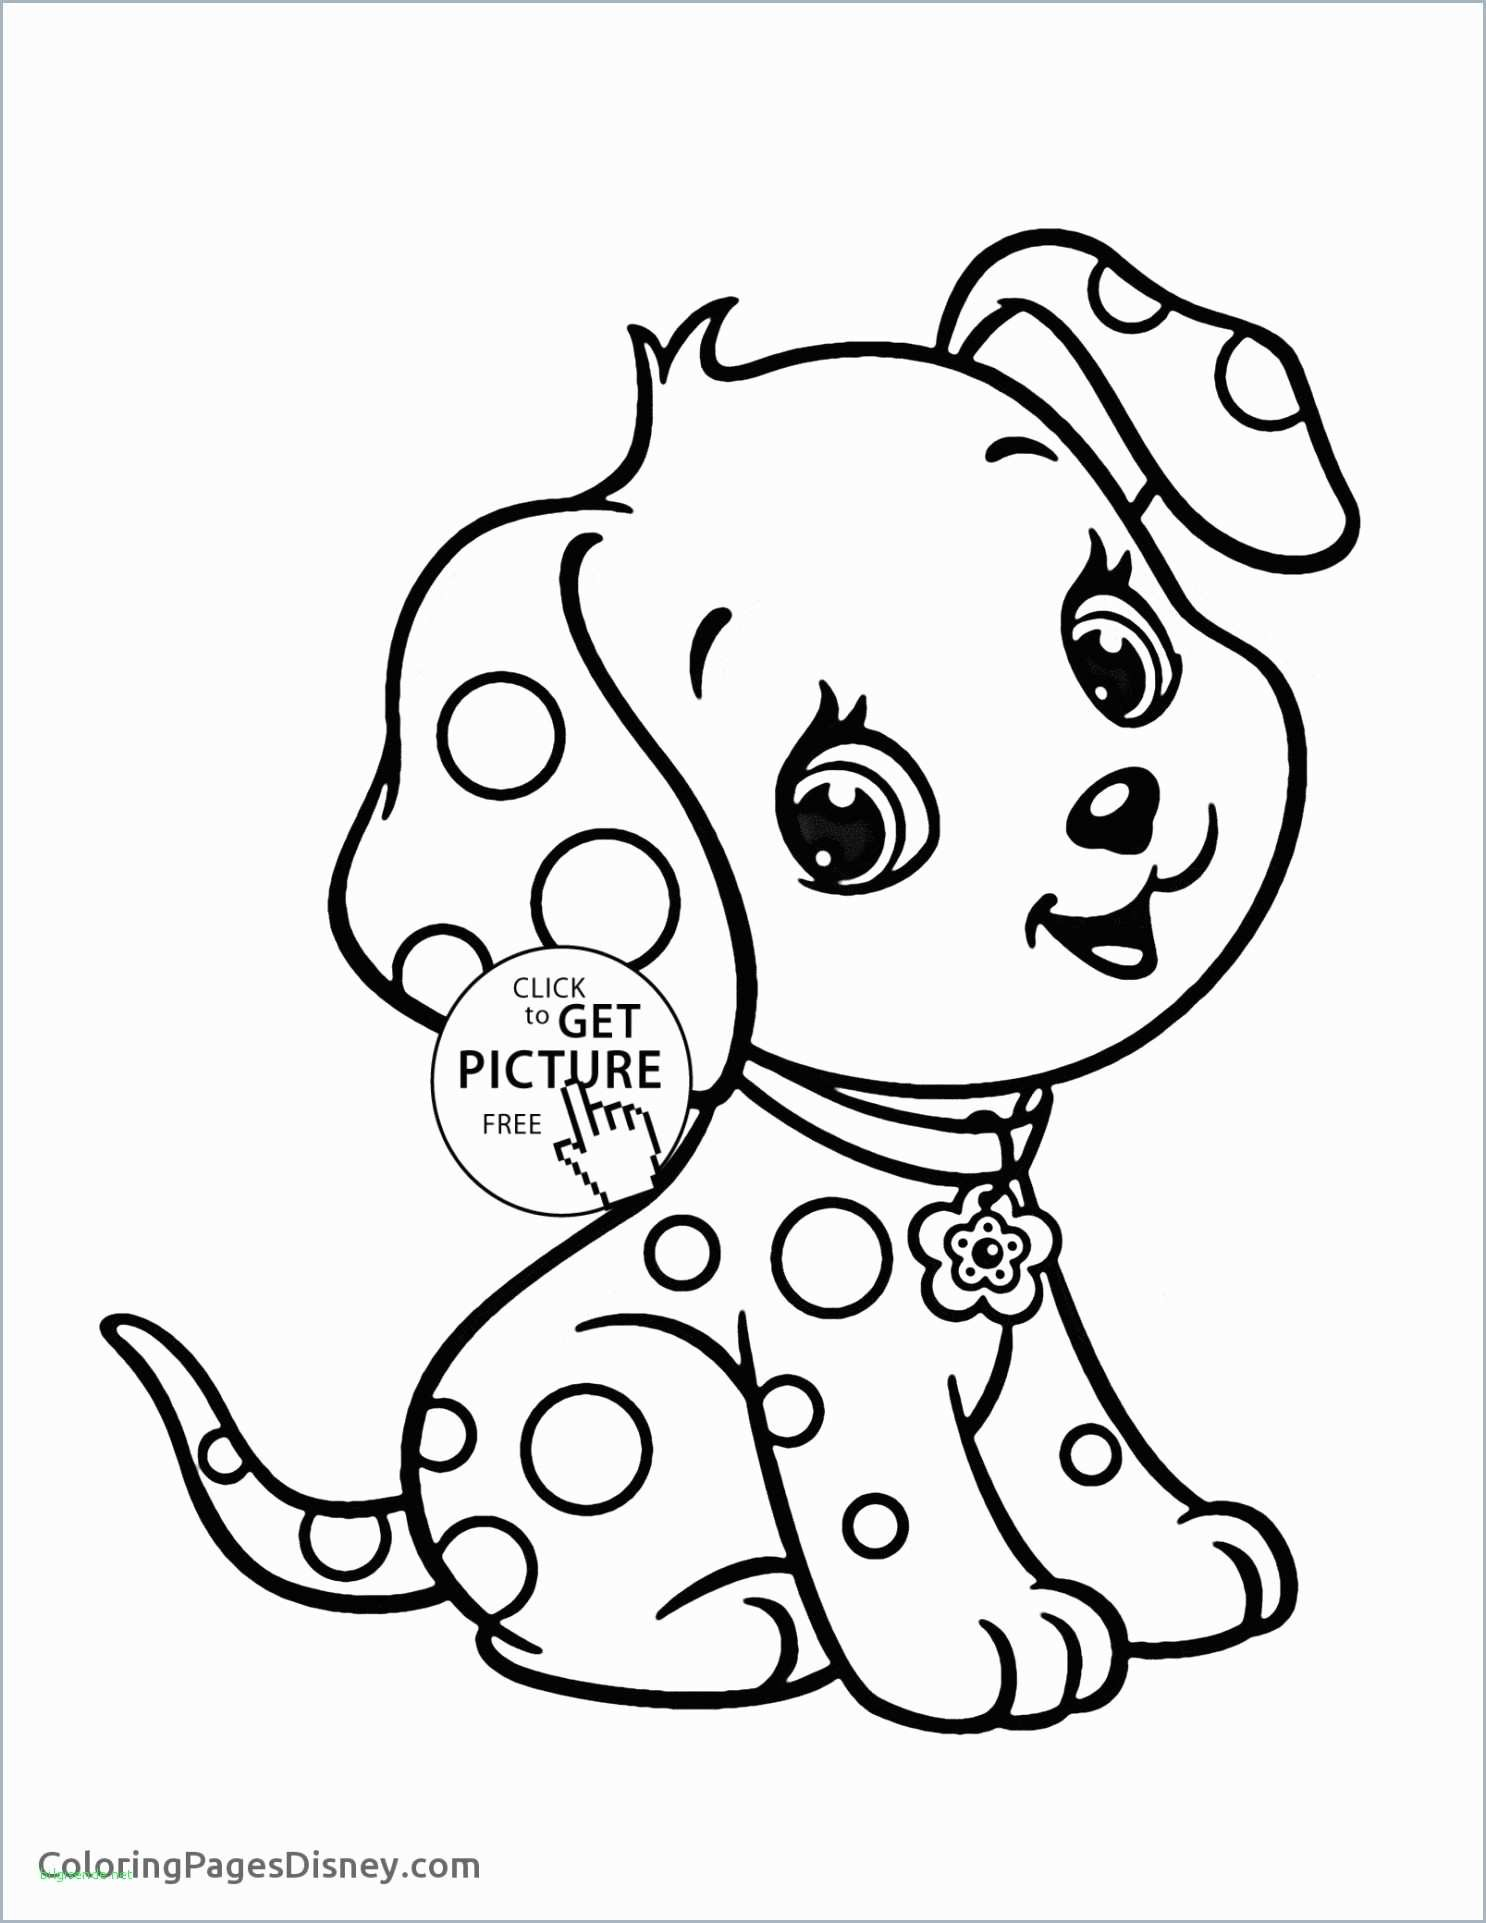 - Disney Character Coloring Pages Disney Characters Printable